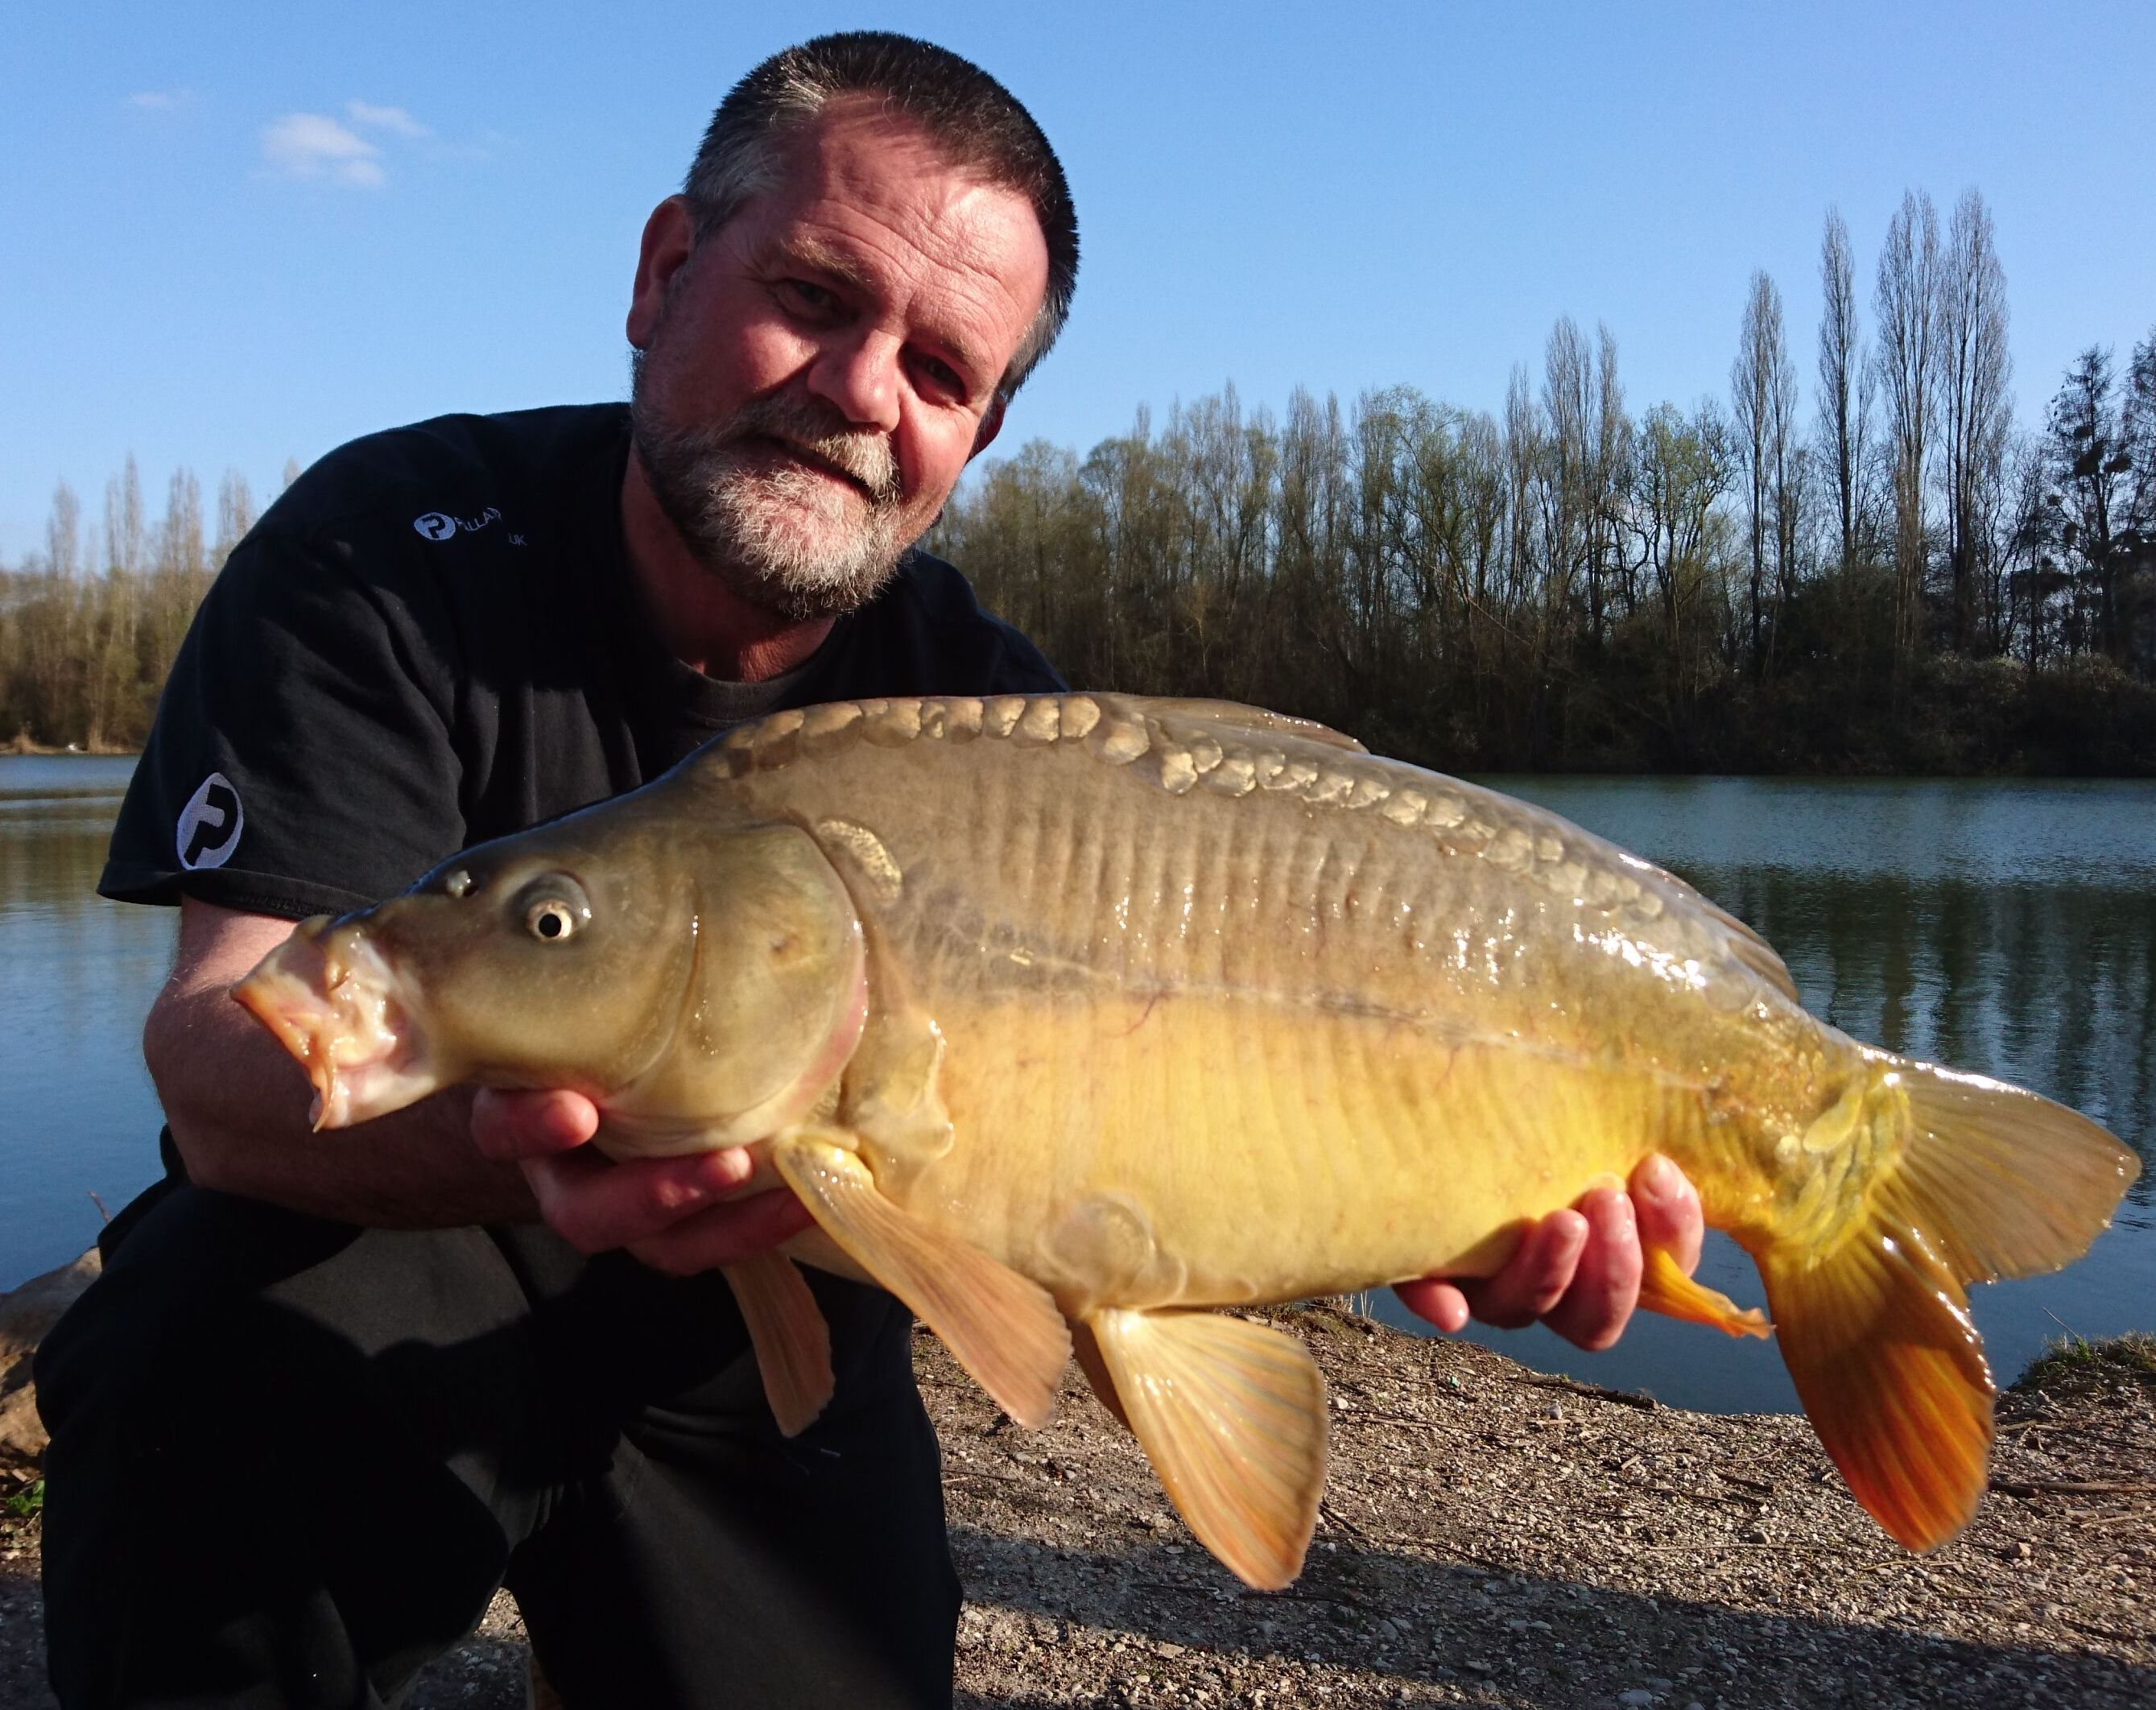 Simon Pomeroy has long been a leading advocate of lead-free fishing weights.